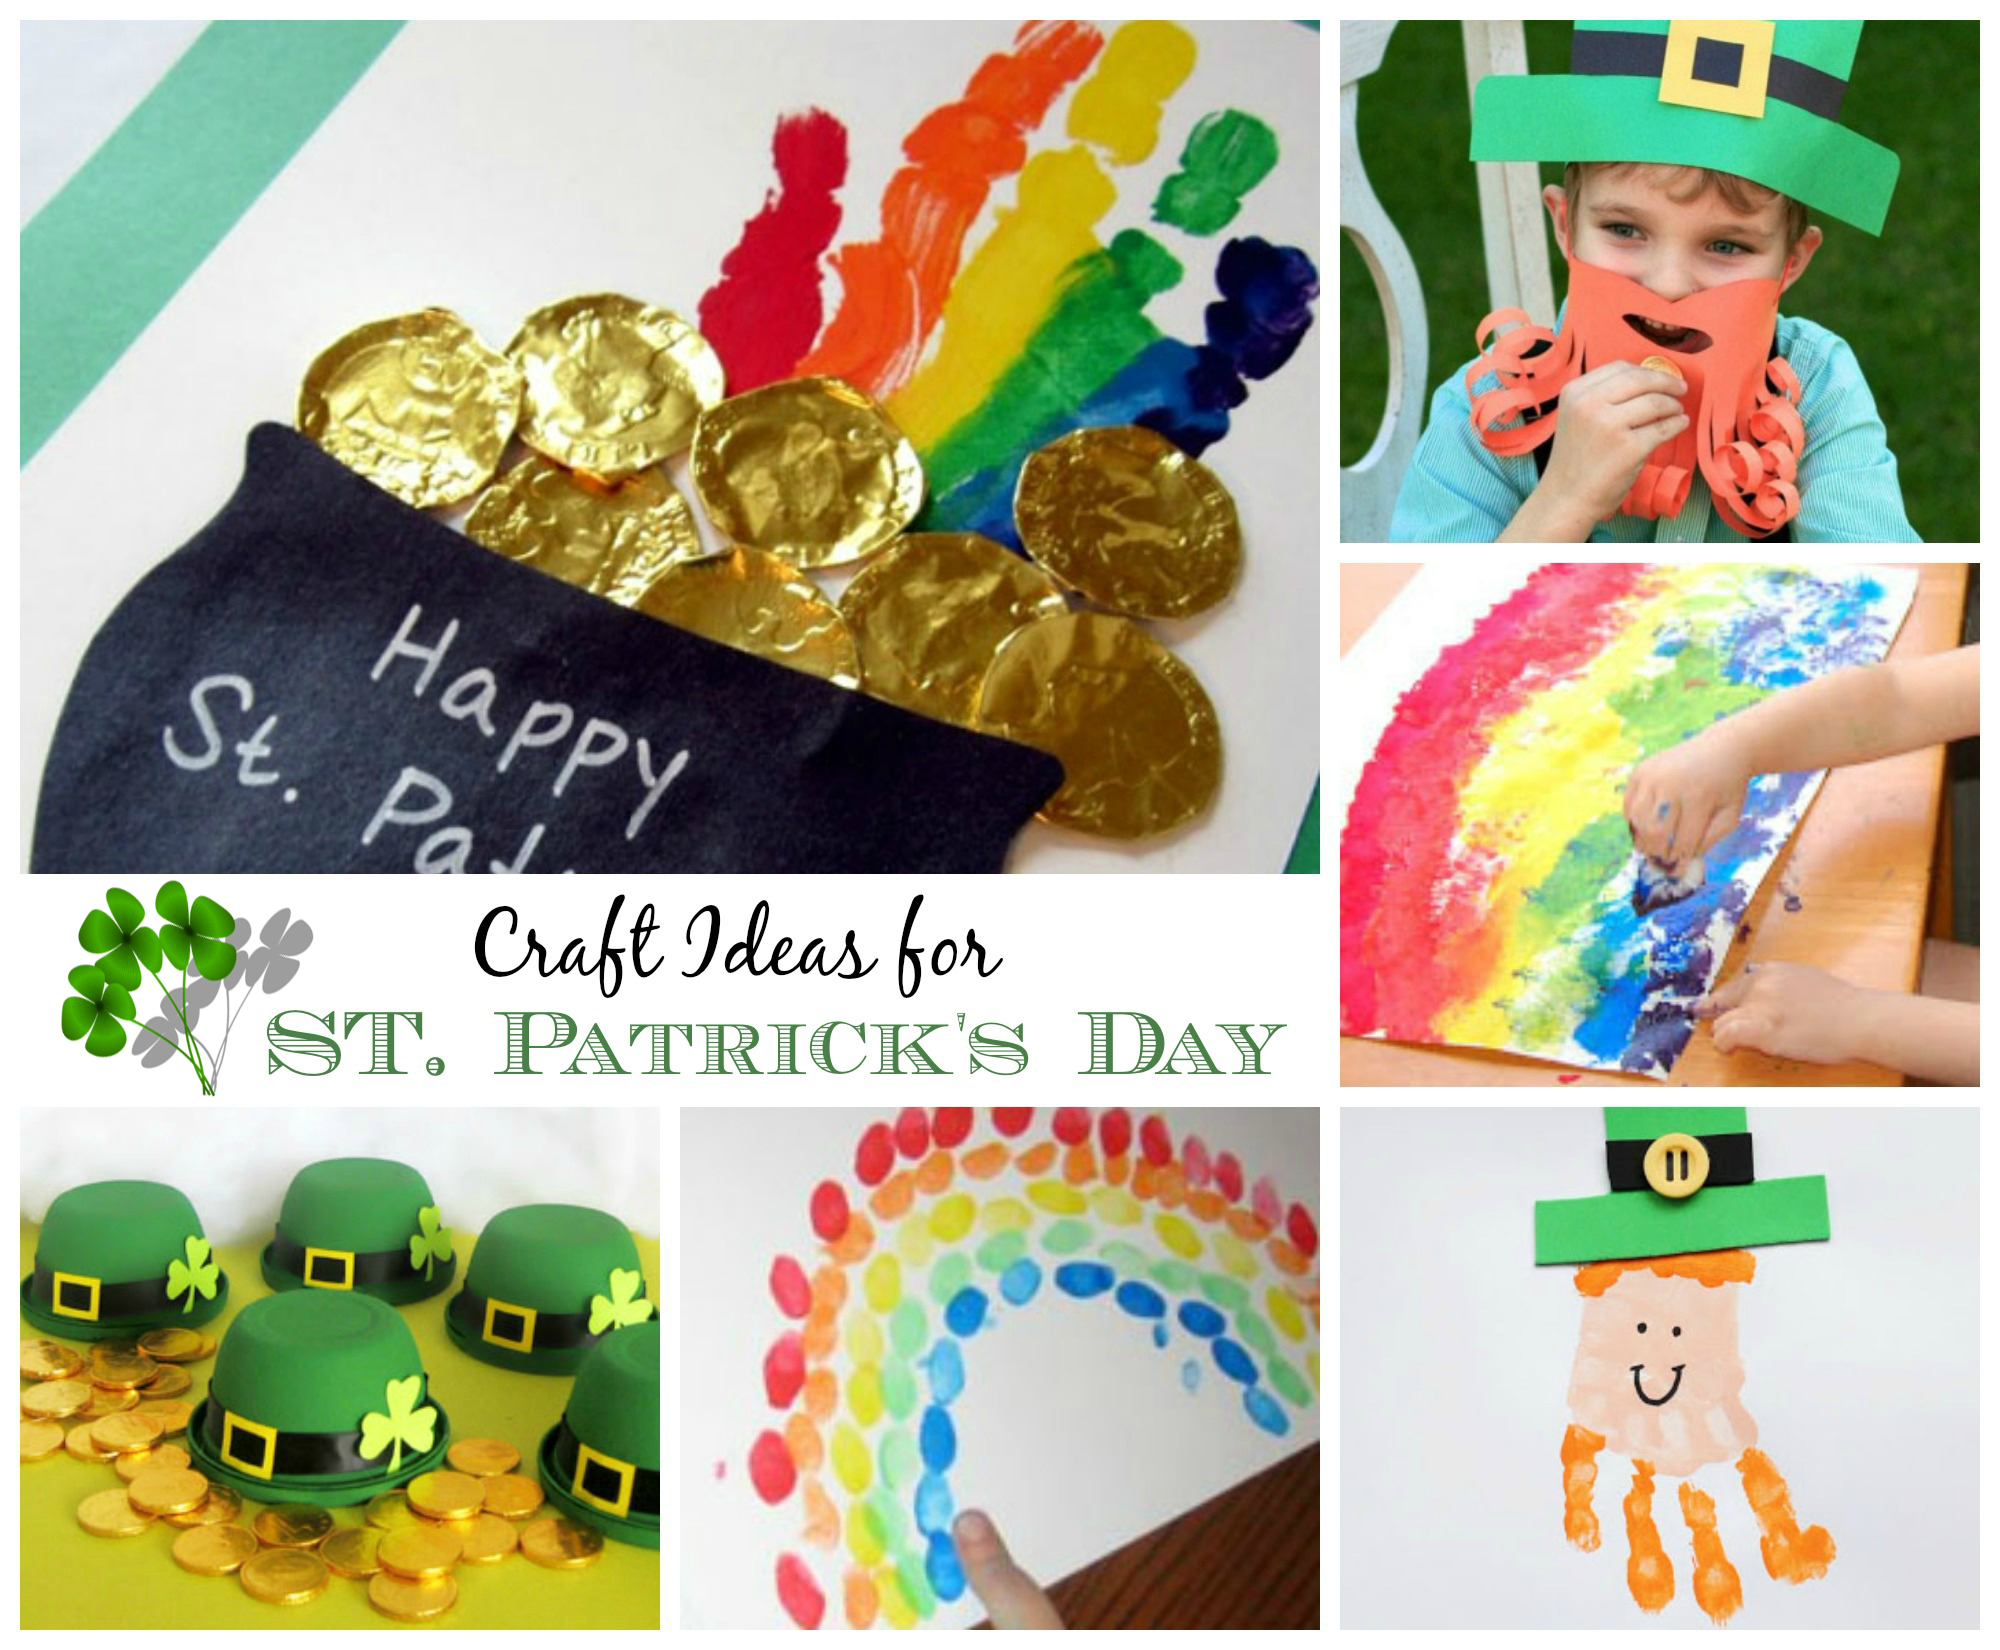 Saint Patrick's Day Craft Ideas